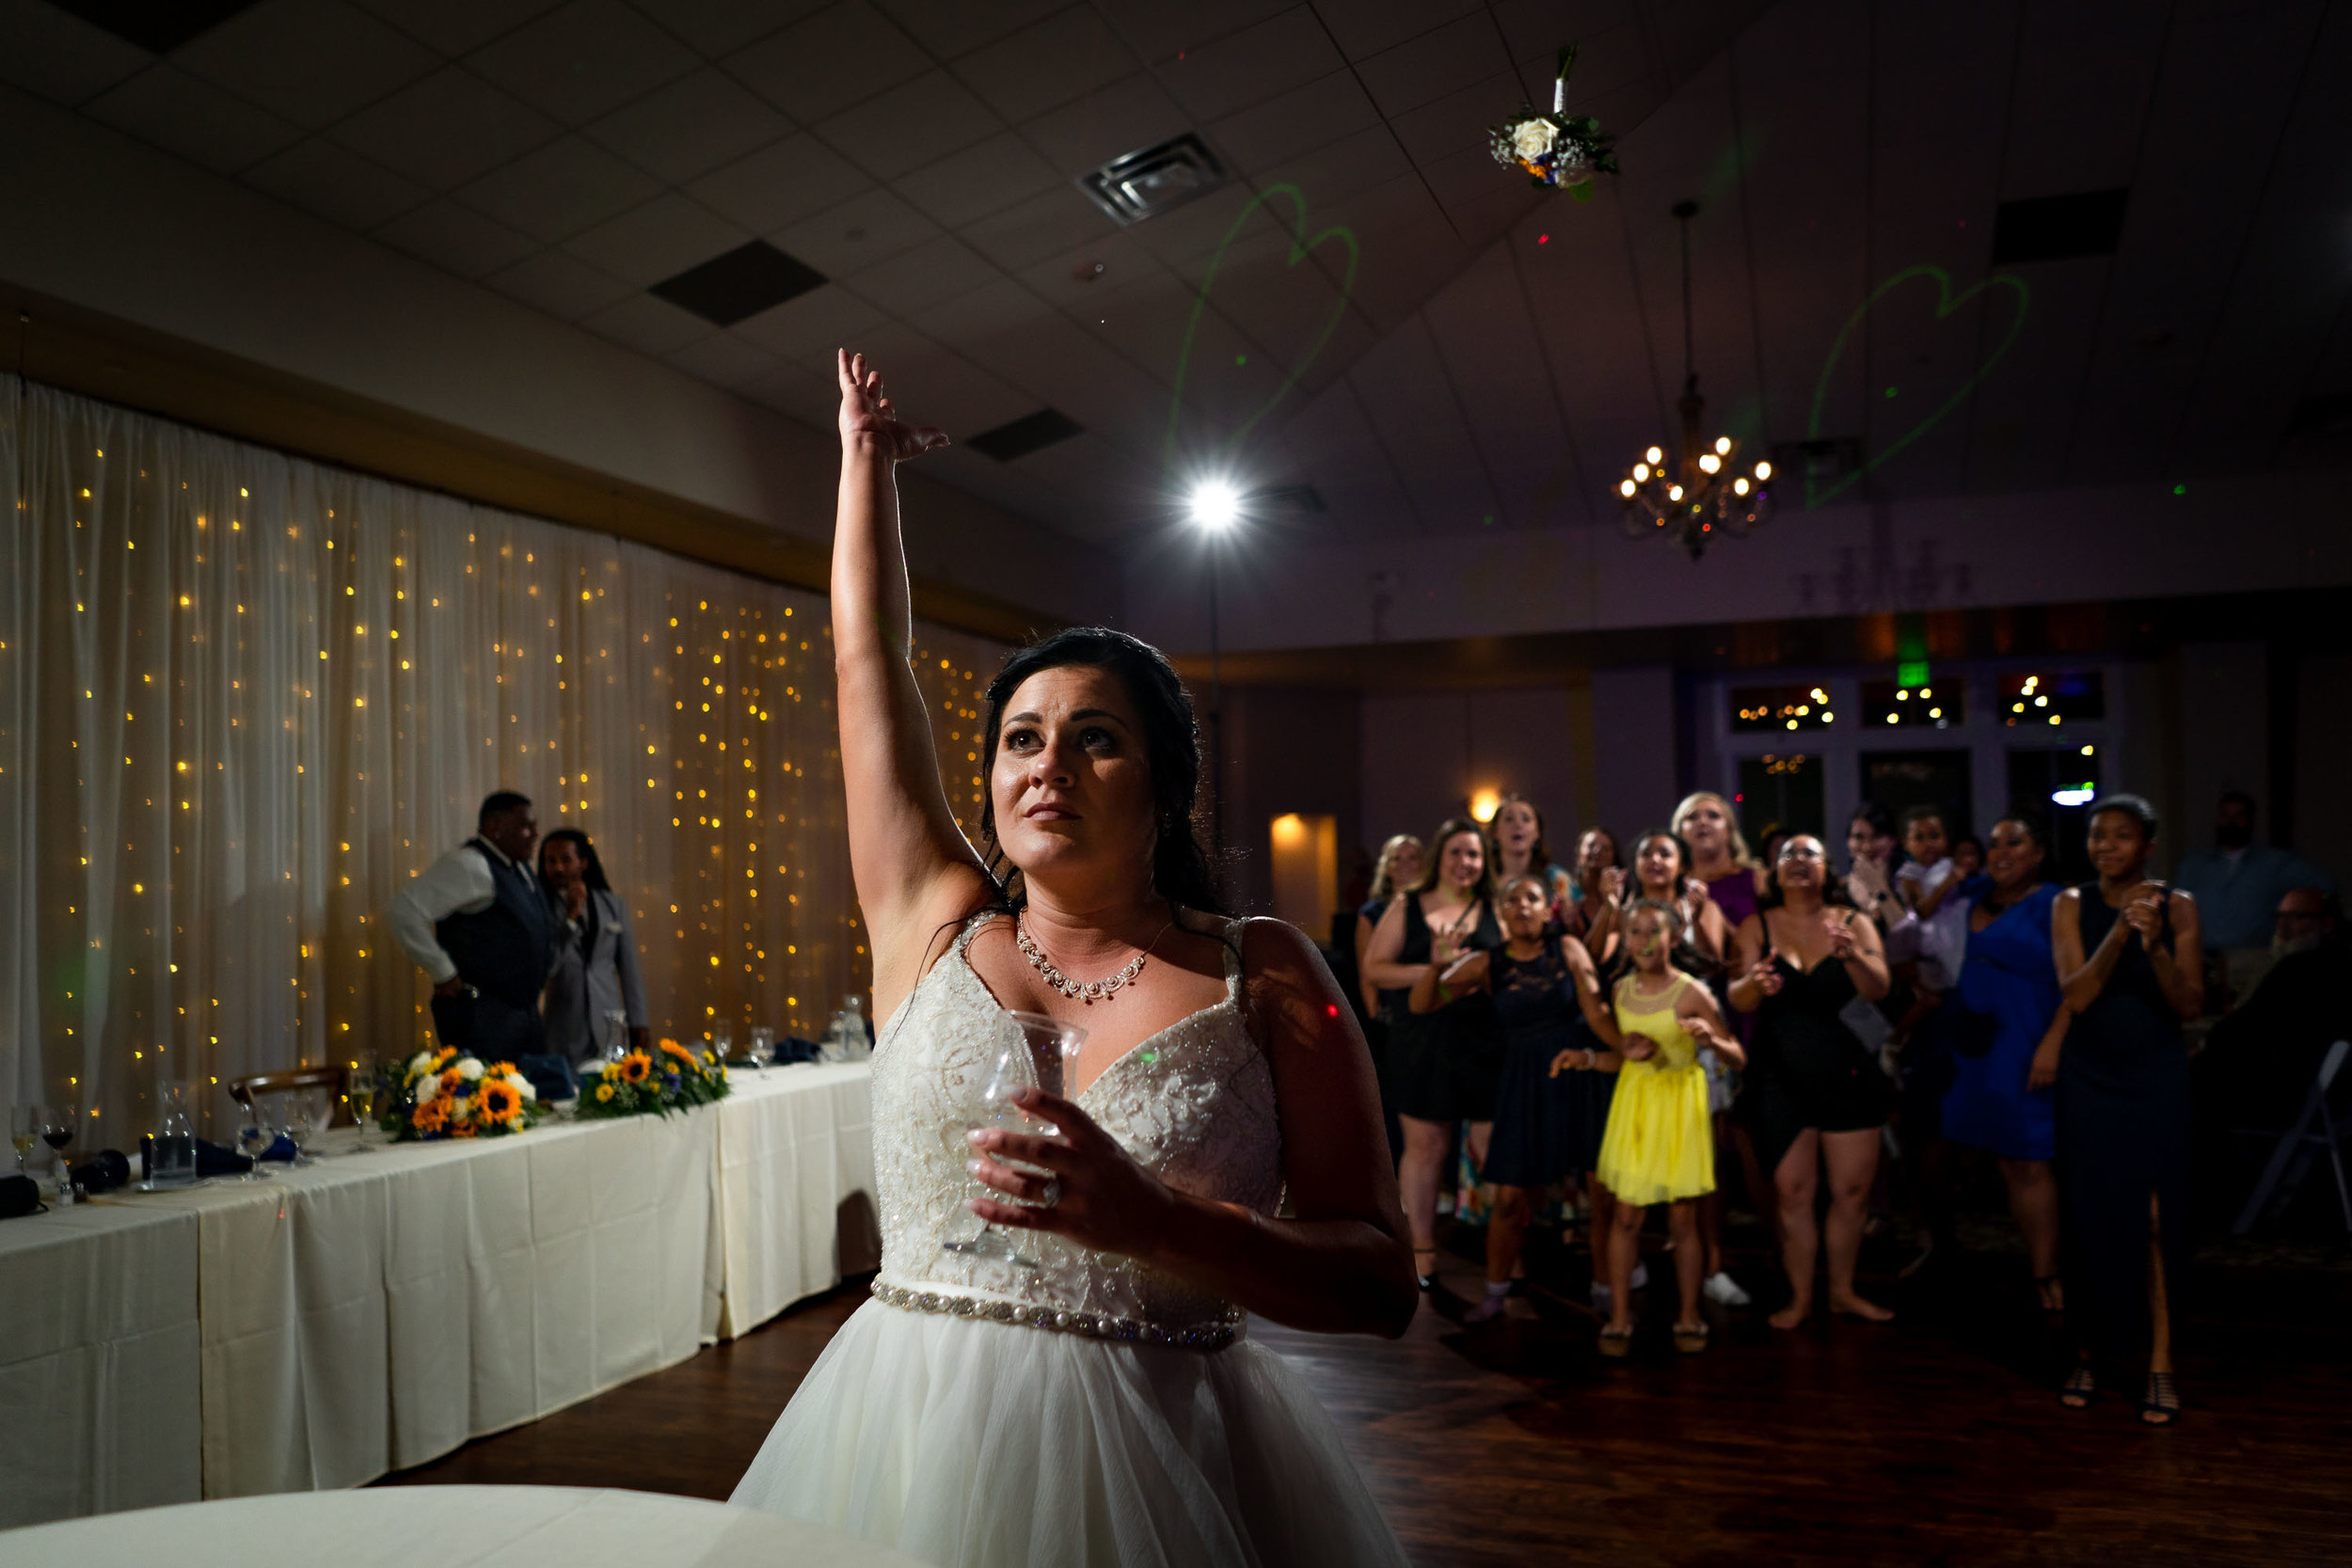 Joloni_Jenny_Wedding_158.jpg